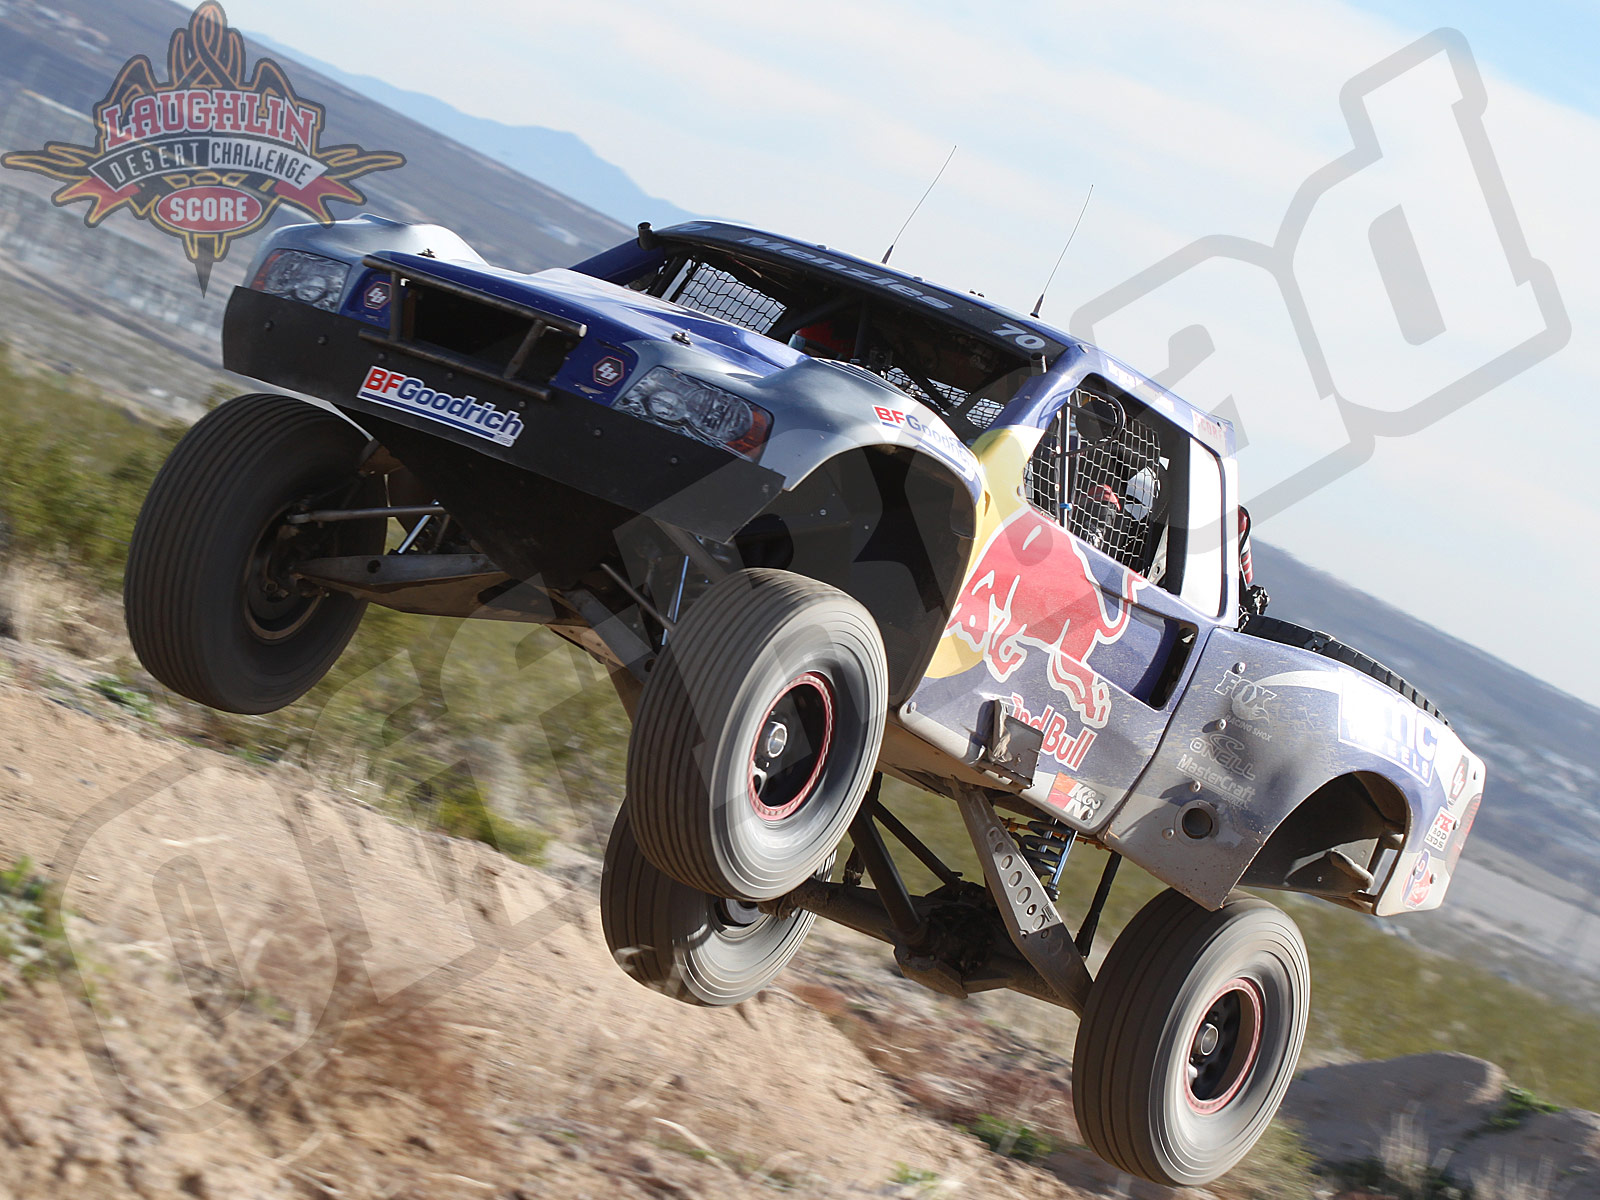 030311or 6834+2011 score laughlin desert challenge+trophy trucks sunday